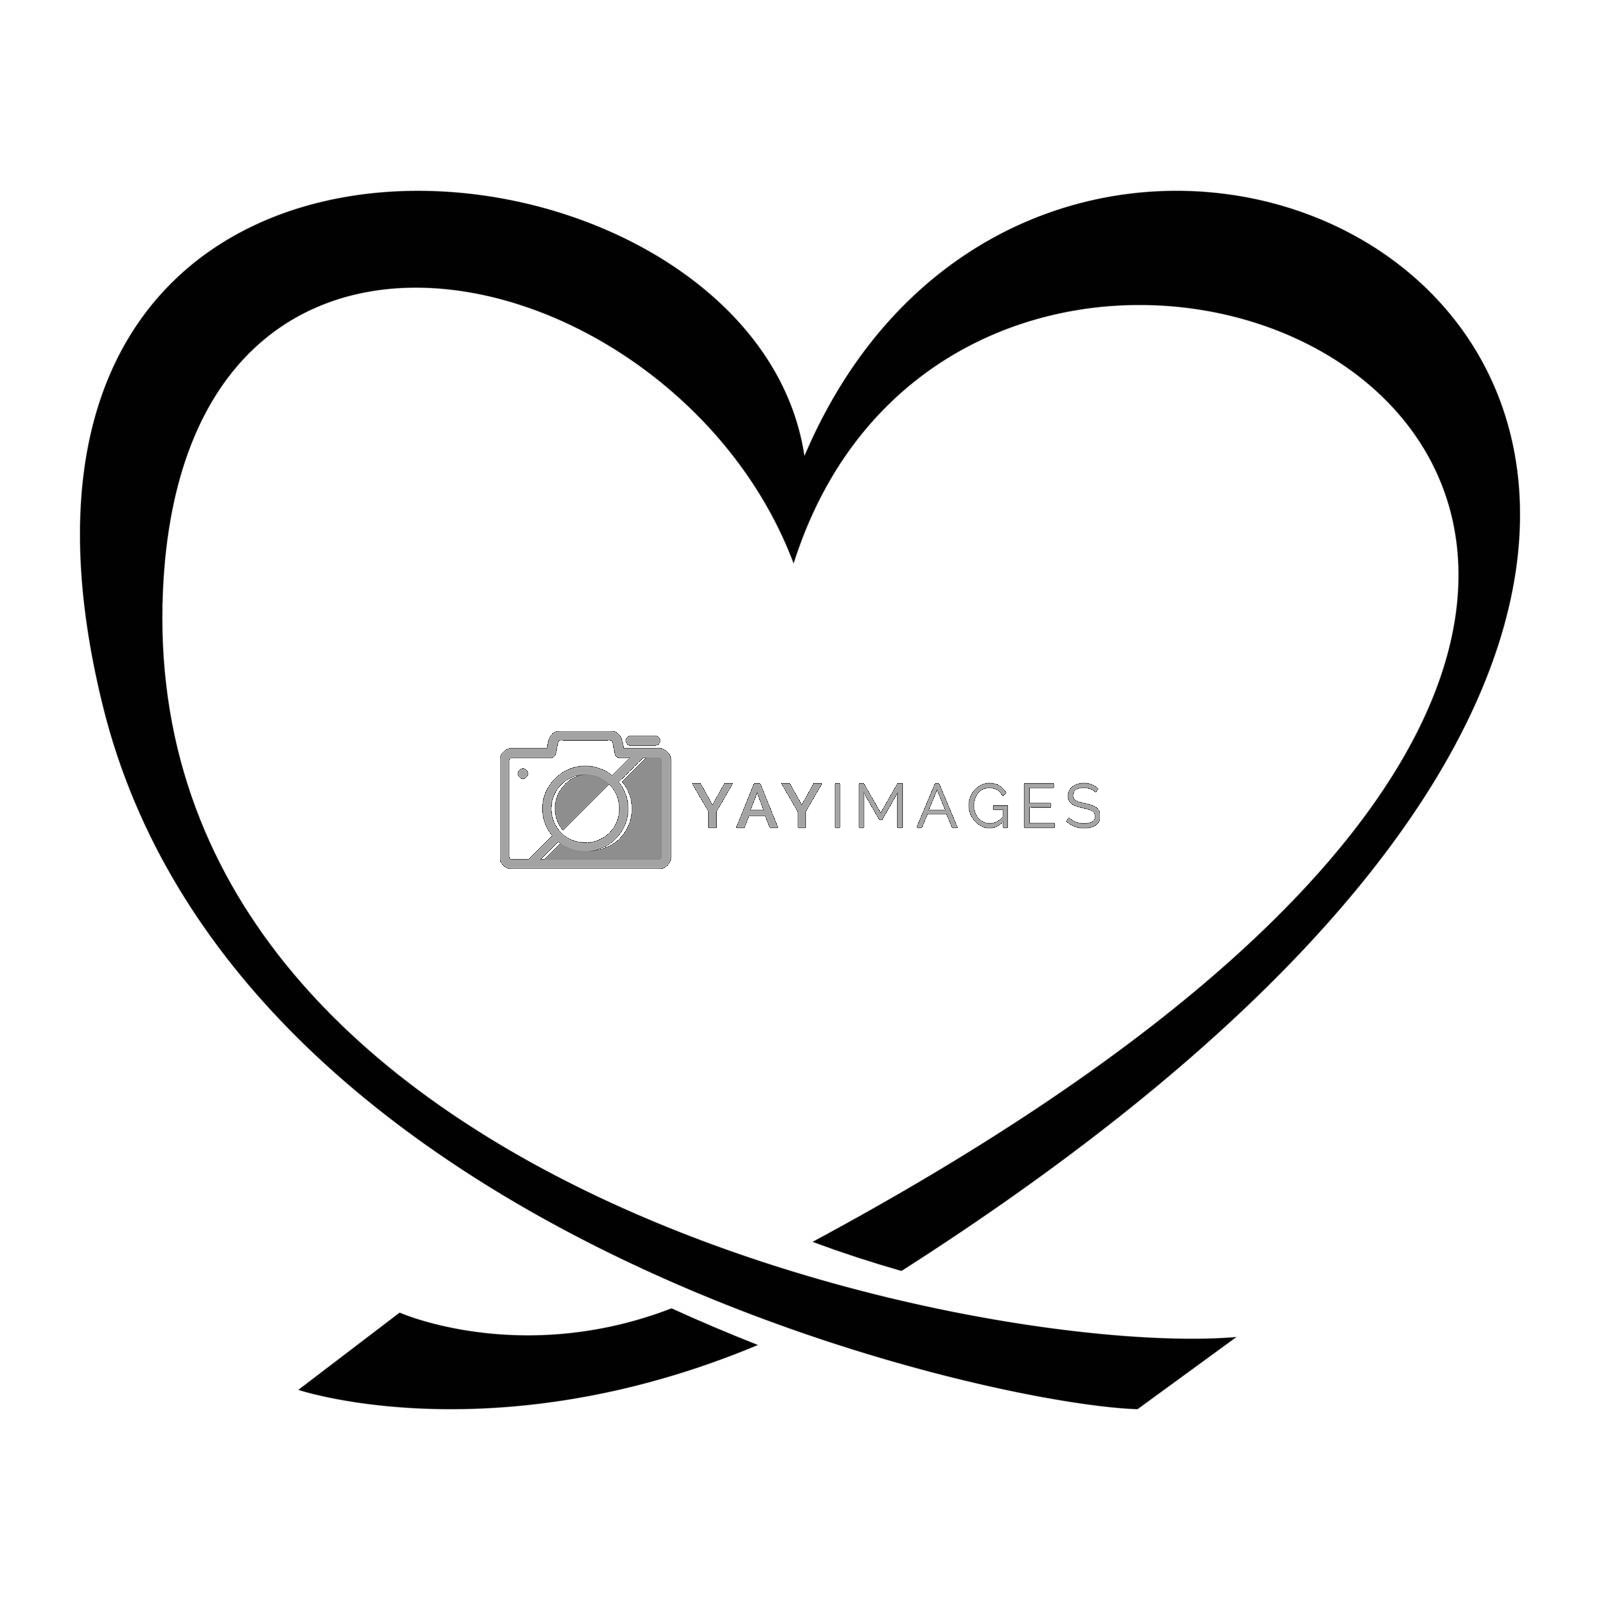 Ribbon heart icon black color vector illustration flat style simple image